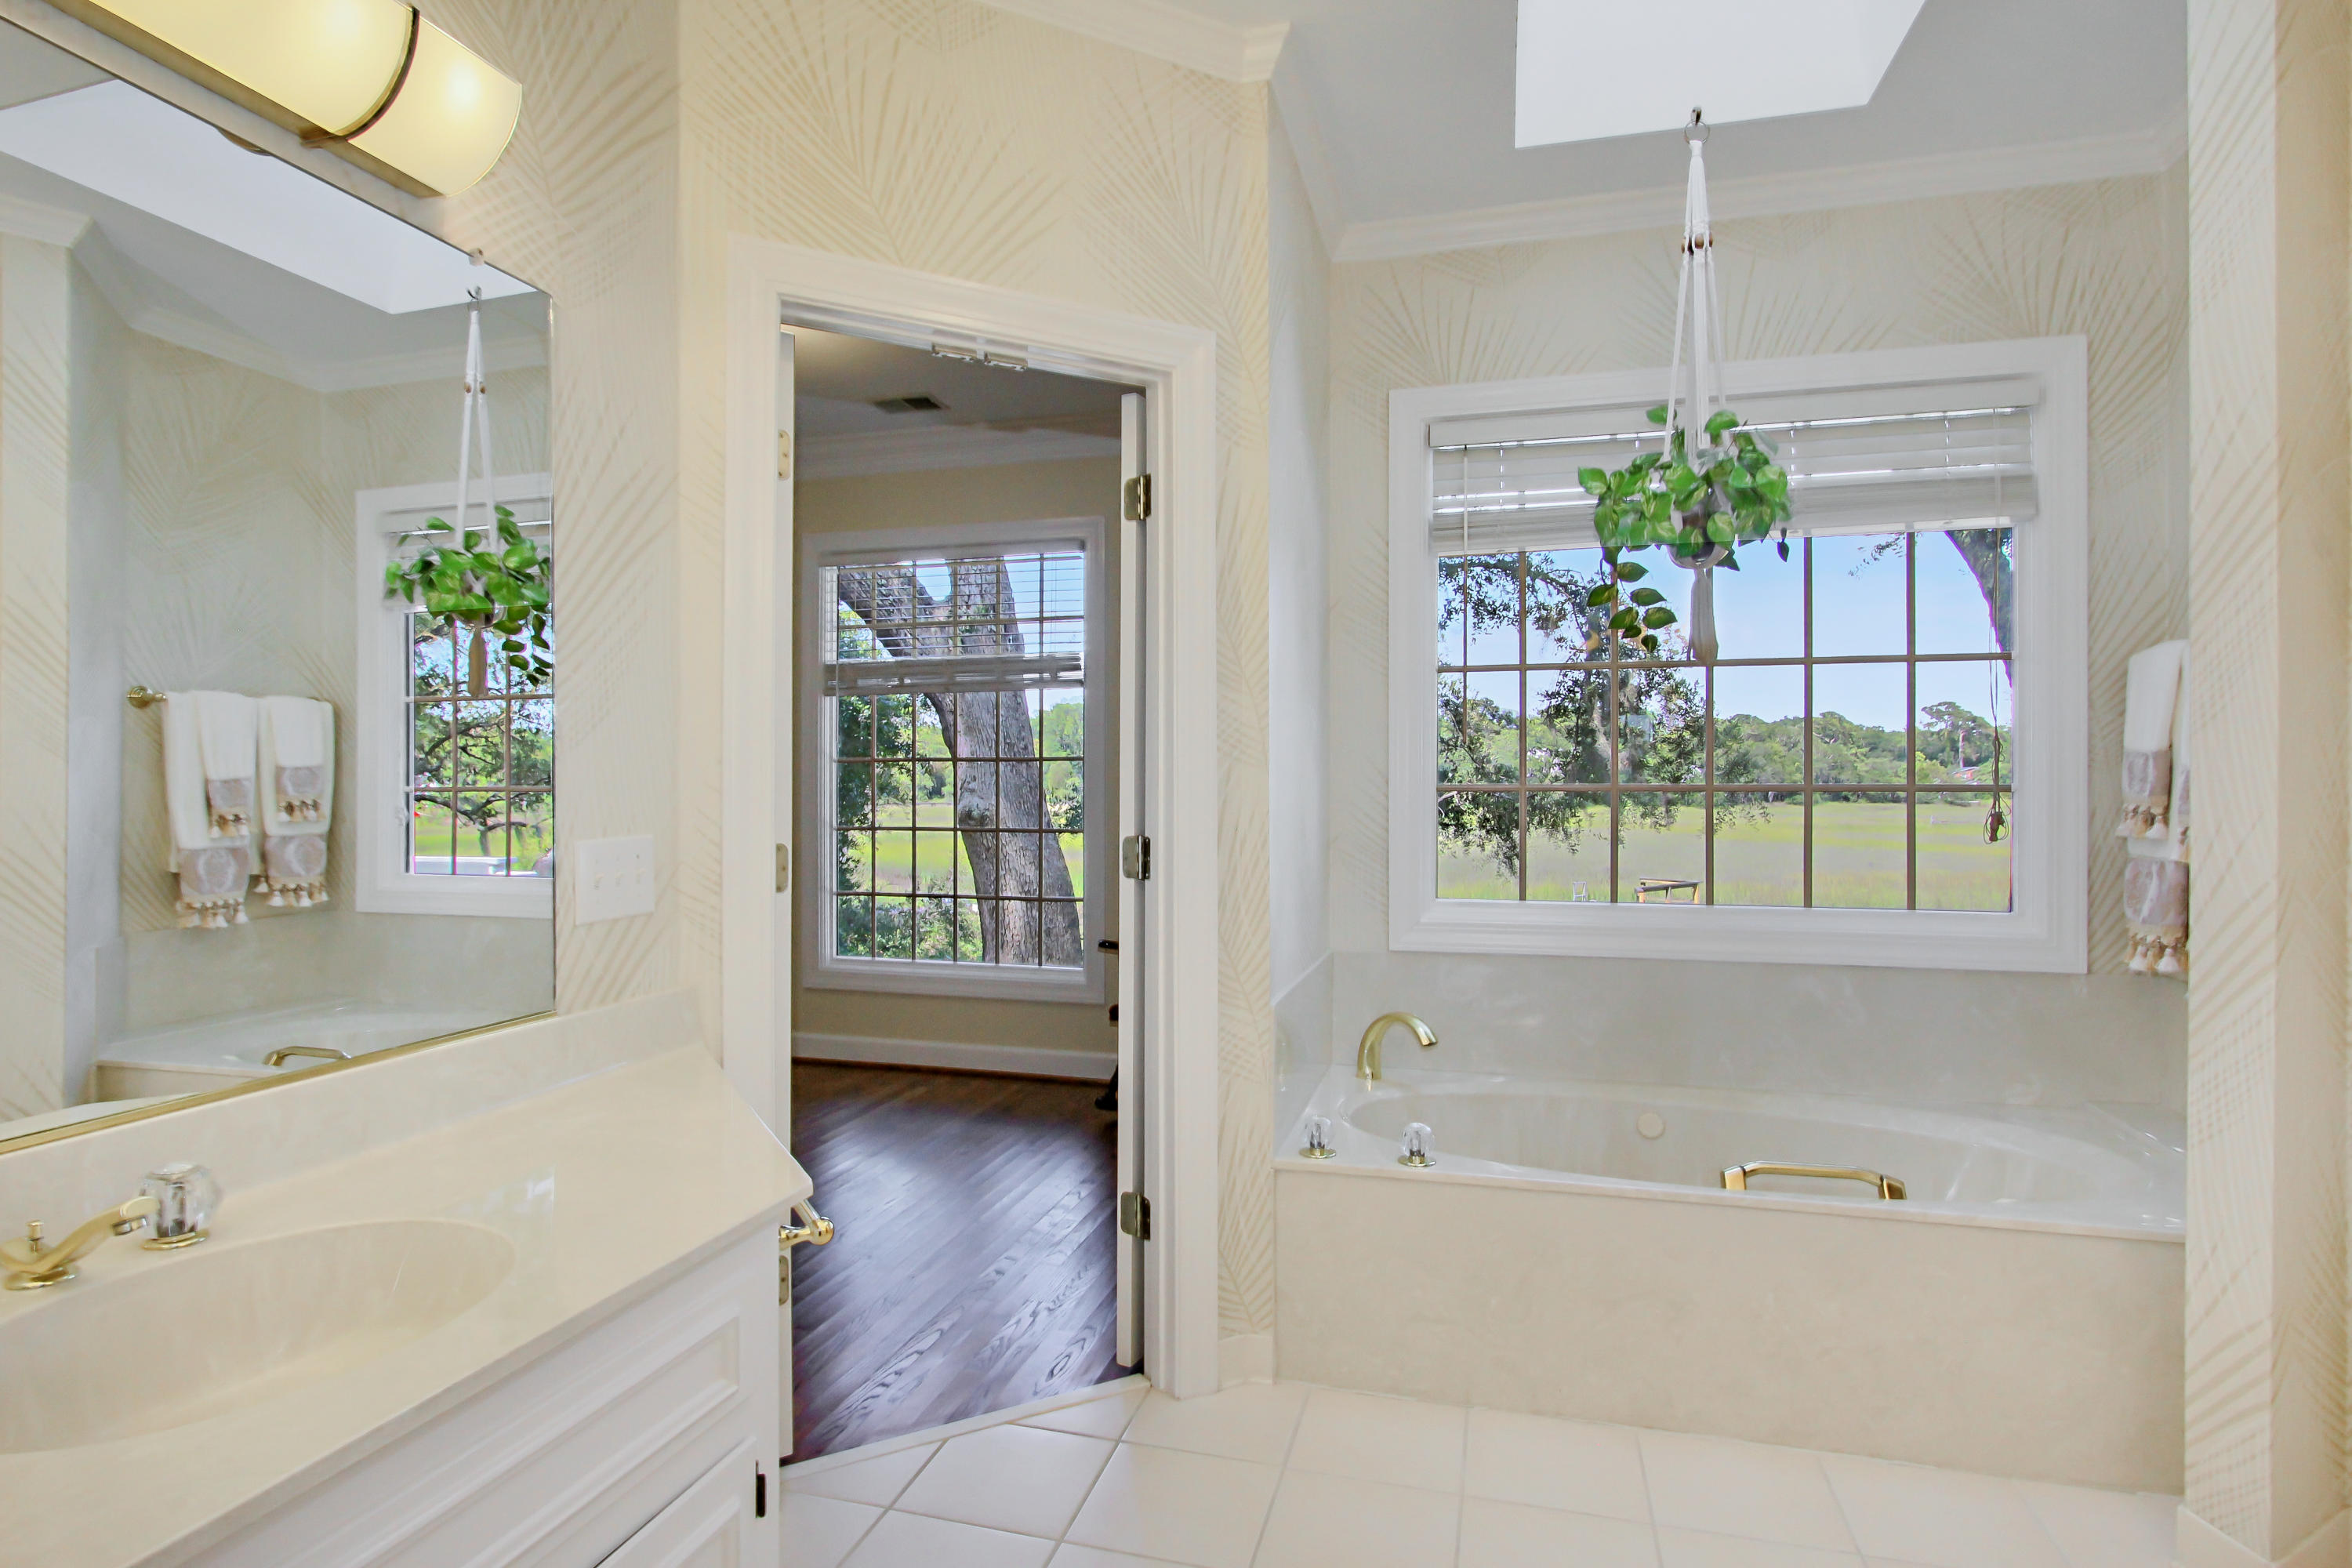 Stiles Point Plantation Homes For Sale - 837 Whispering Marsh, Charleston, SC - 10